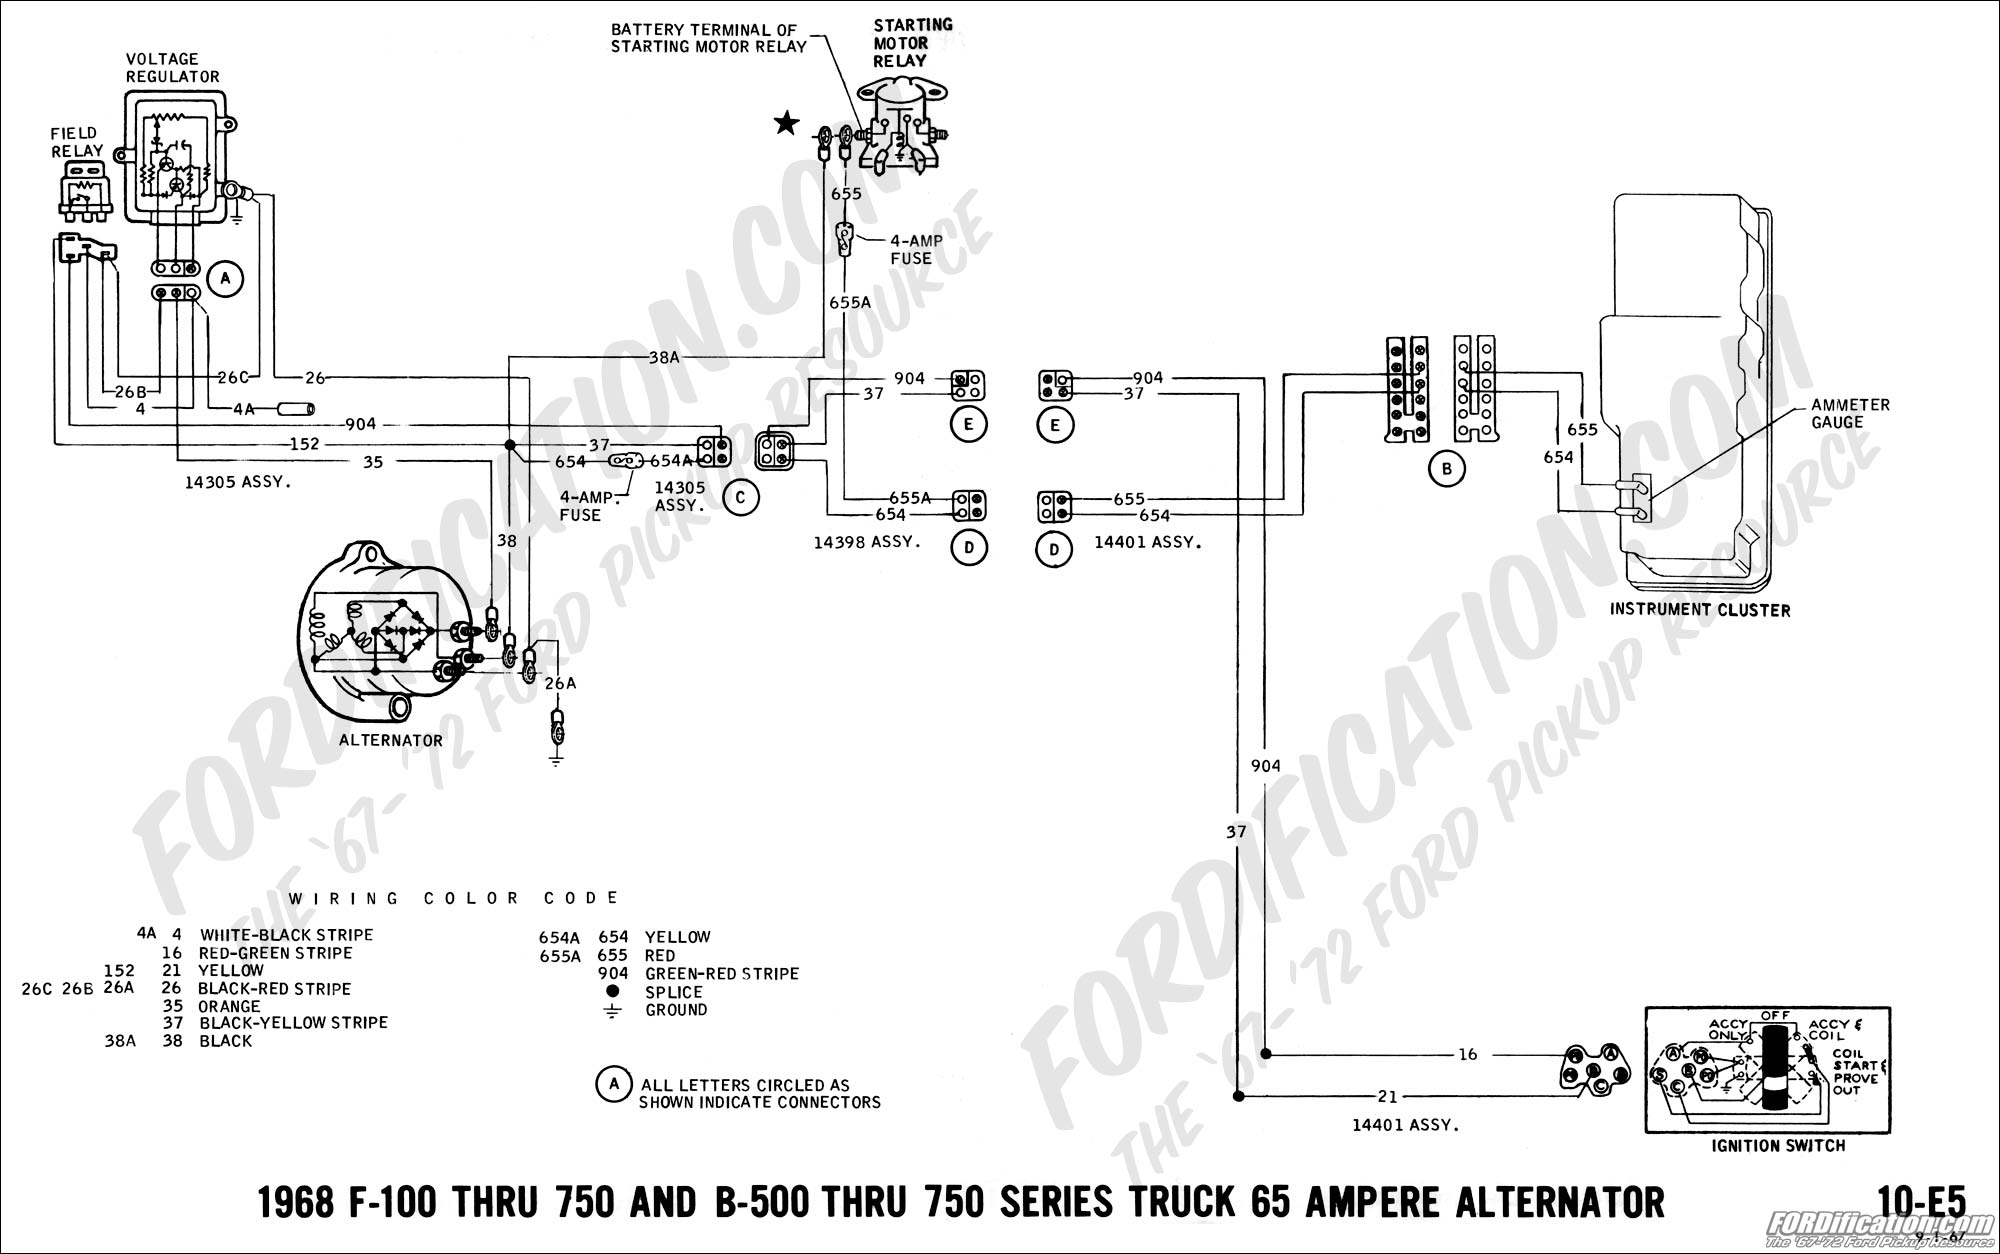 Wiring Diagram Besides 1957 Ford Ranchero On Basic Alternator Wiring on 1957 chevrolet ignition diagram, 1957 horn diagram, 1957 chevy fuse box diagram, ignition switch schematic diagram, distributor wiring diagram,